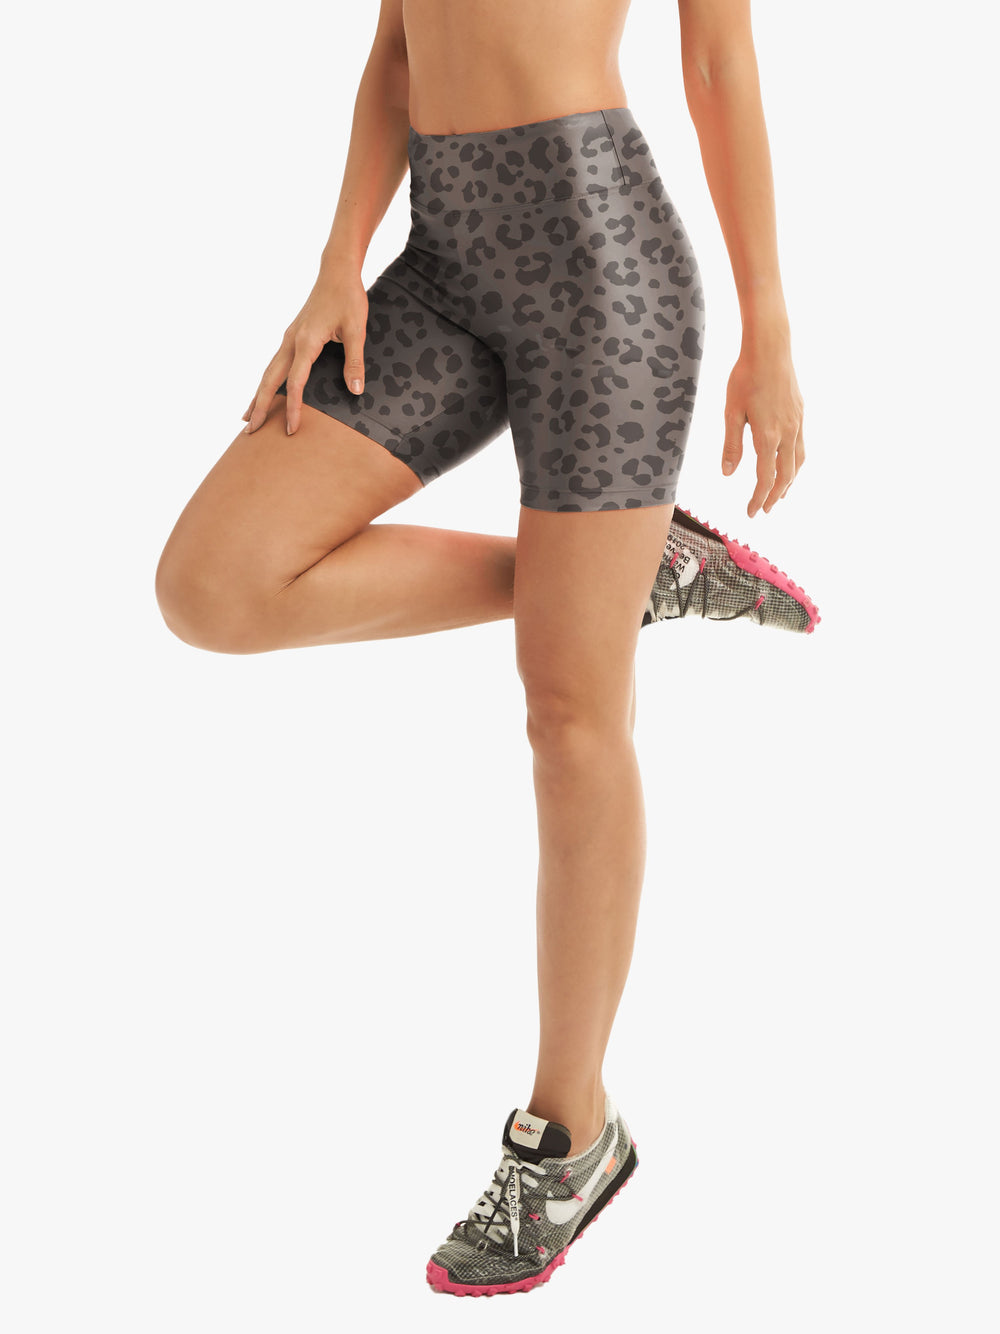 Slalom High Rise Short in Lead Leopard